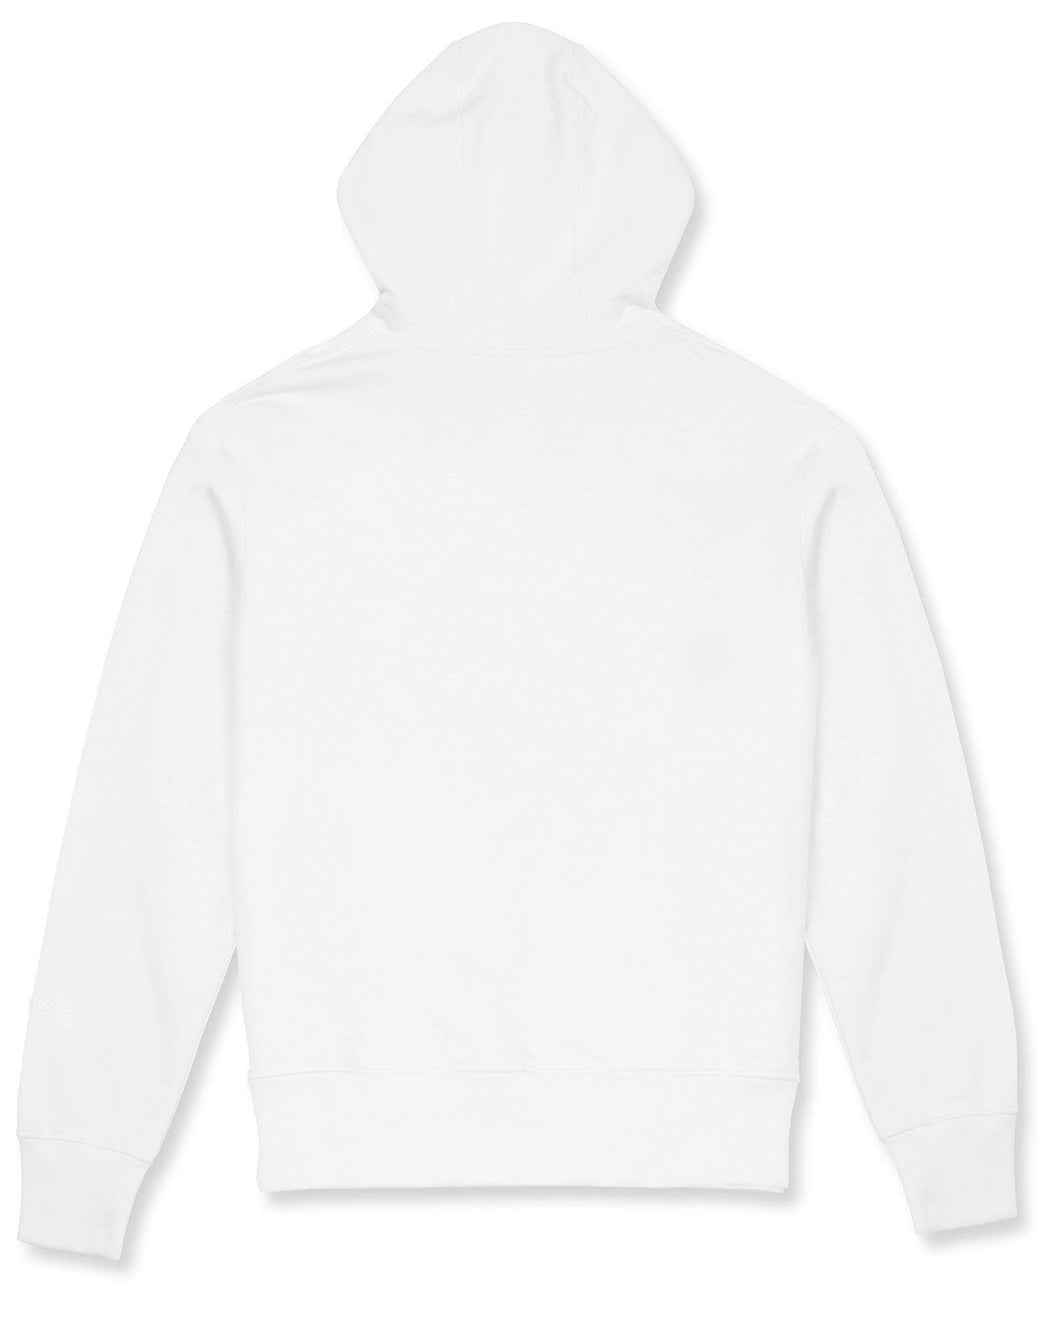 Money Clothing Zamac Hoody